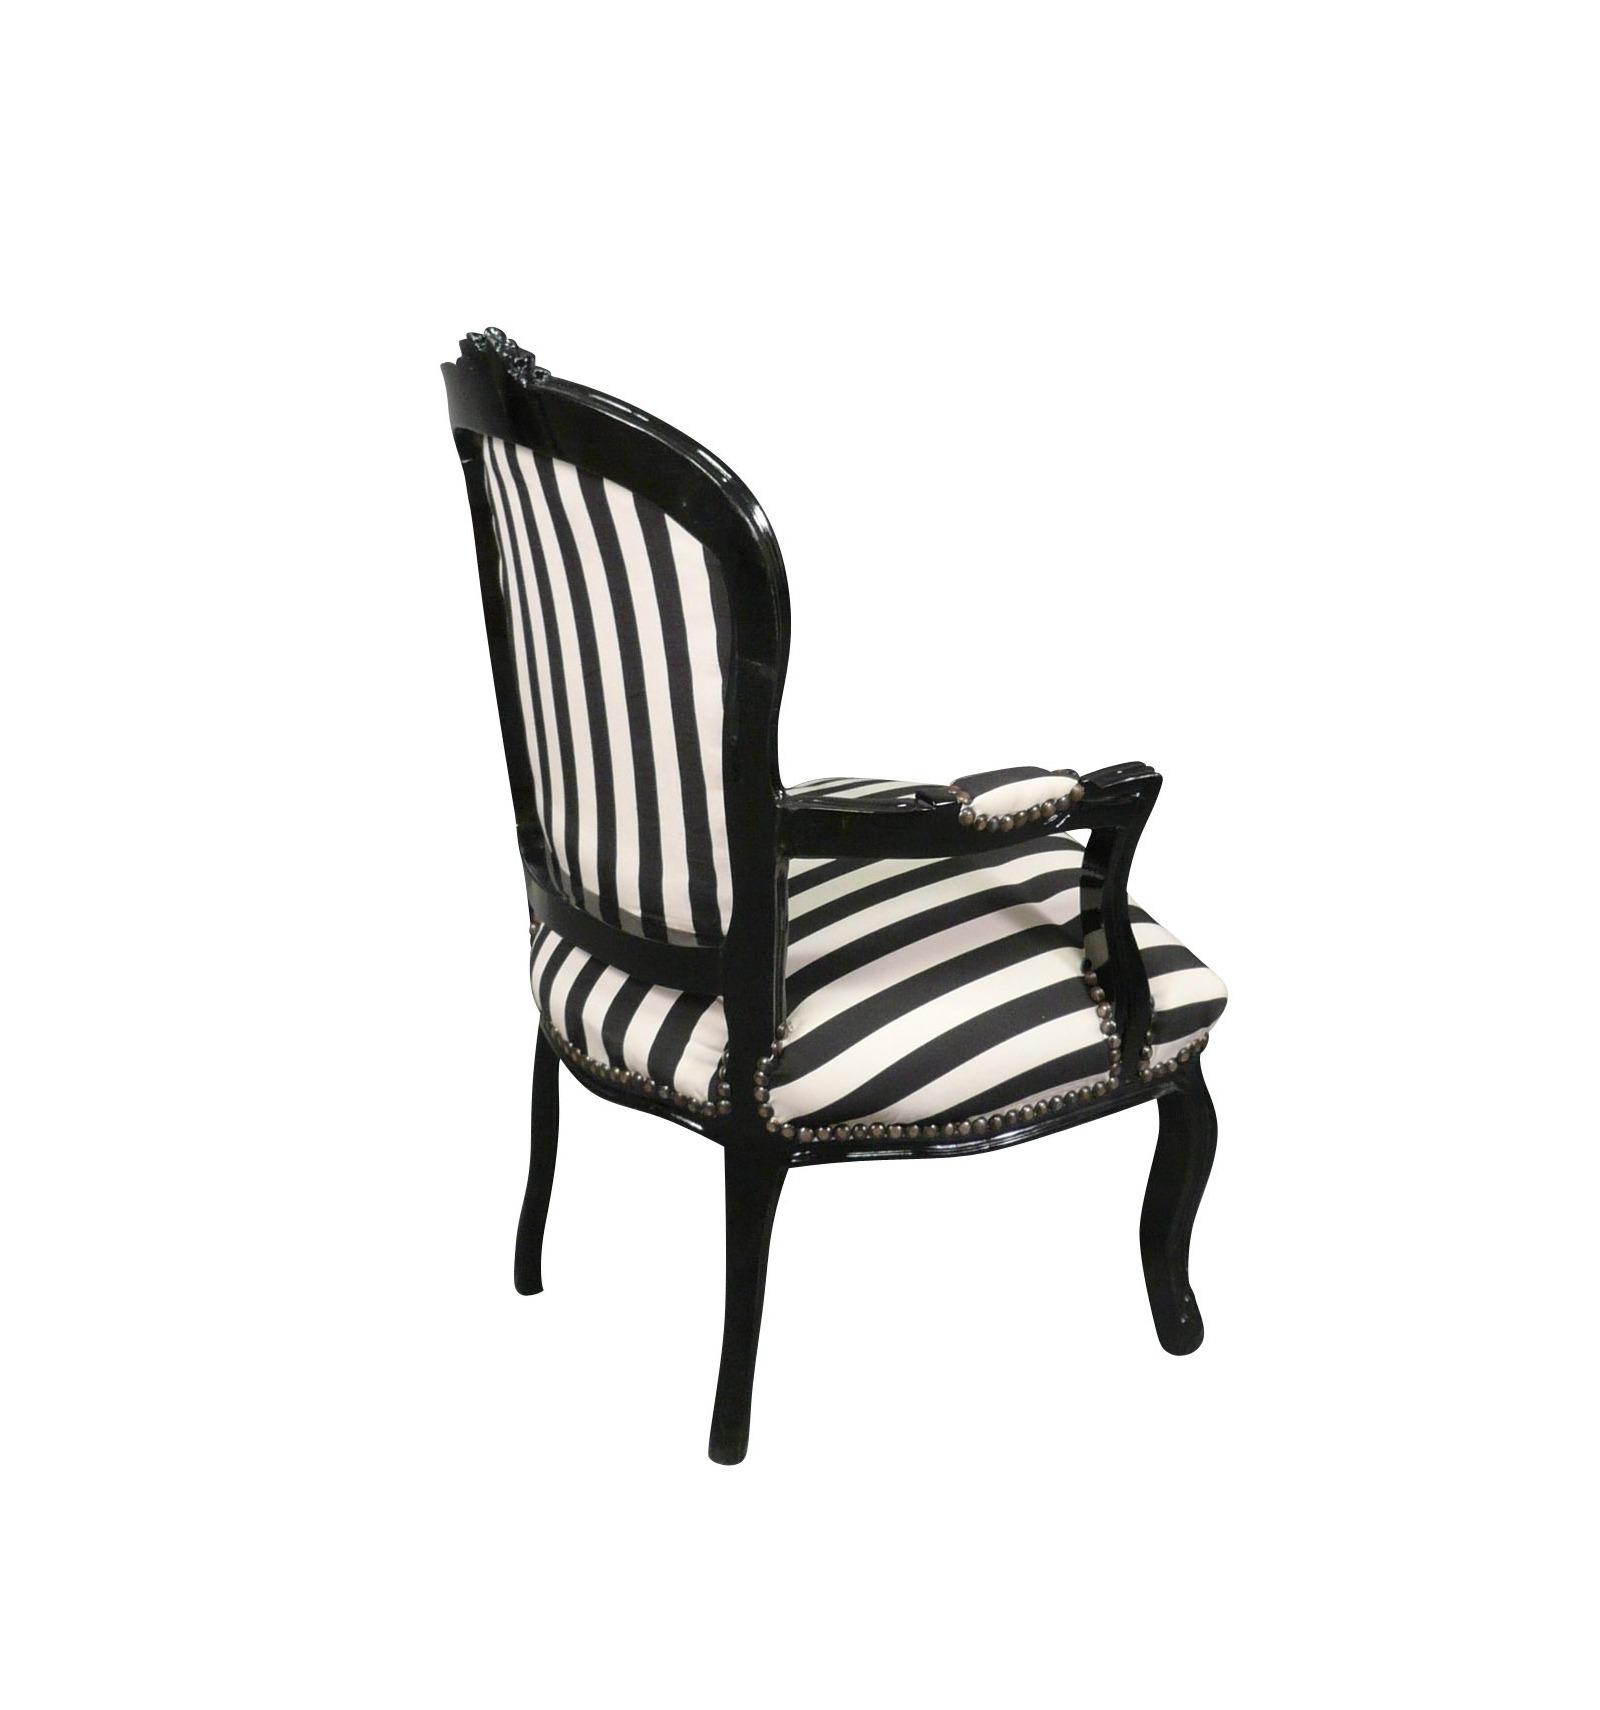 louis xv armchair with black and white striped baroque. Black Bedroom Furniture Sets. Home Design Ideas